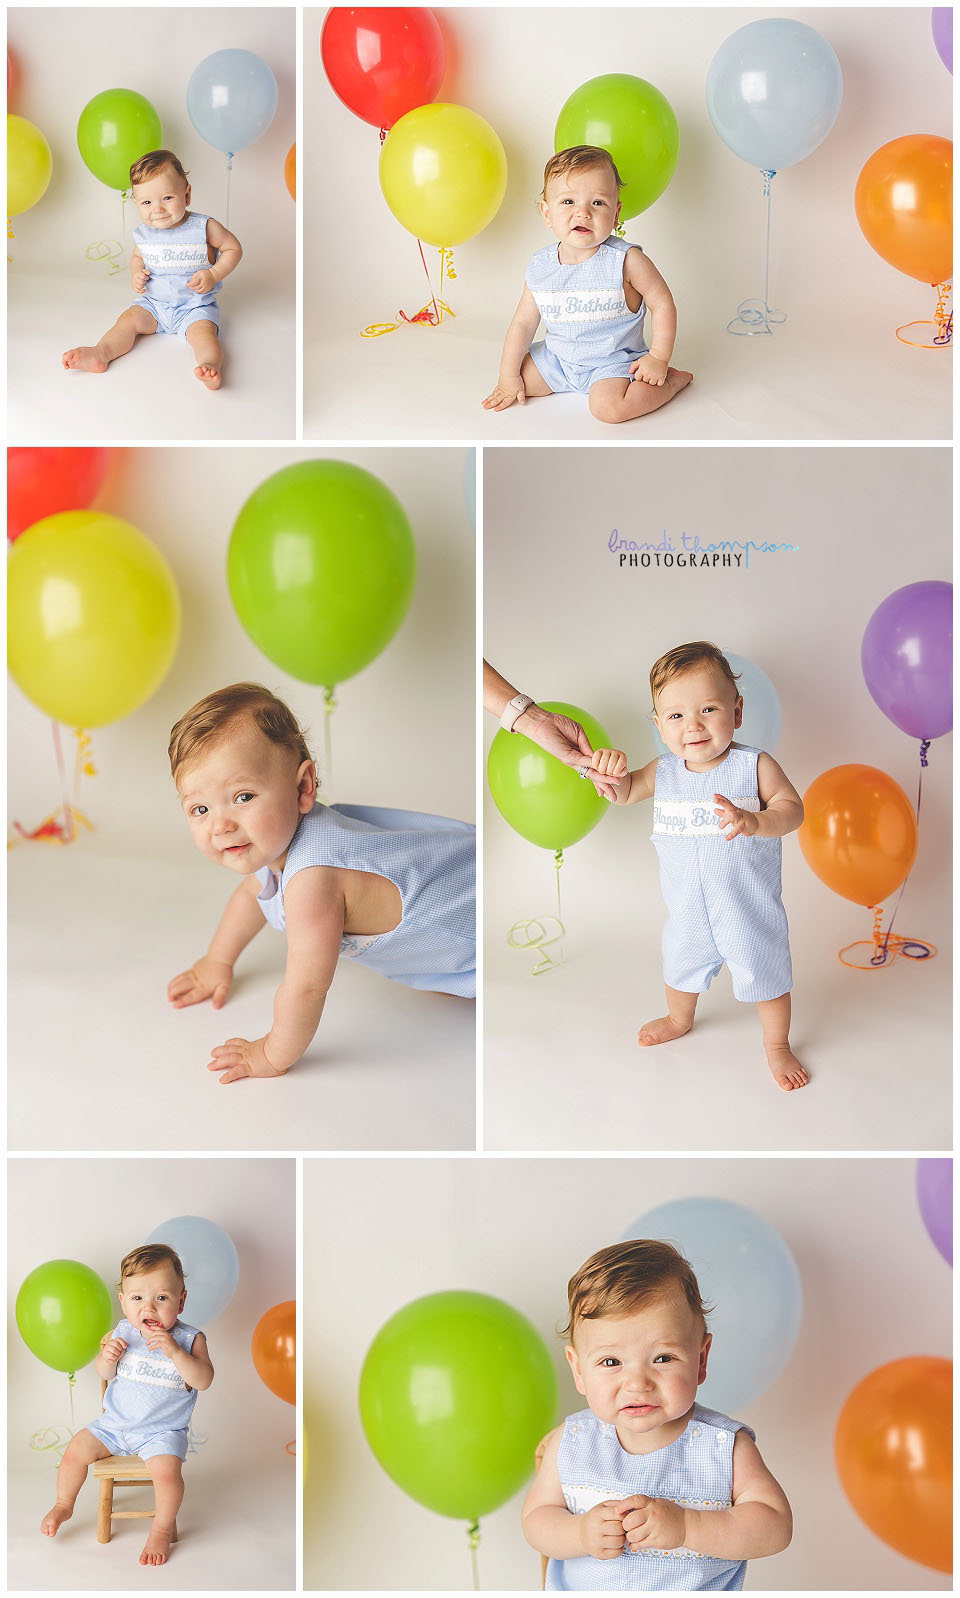 minimalist cake smash with multicolored balloons and baby boy, in plano, tx studio